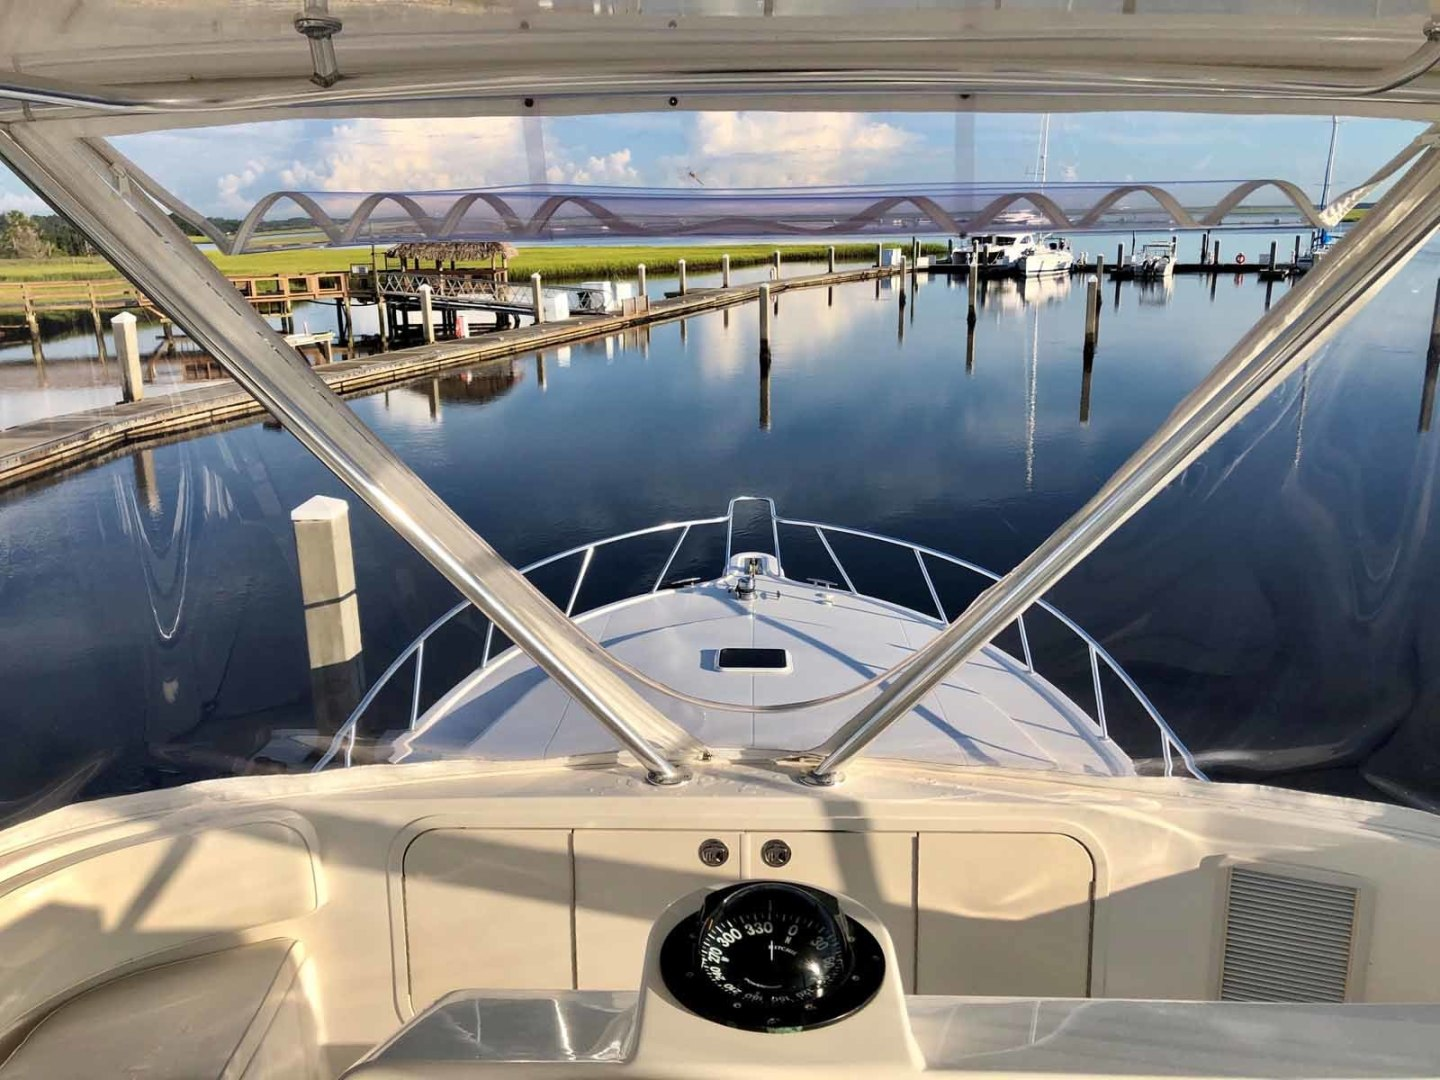 Rampage-45 SF 2004-MY DOLLY Ft. Lauderdale-Florida-United States-Flybridge Looking Forward-1464050 | Thumbnail